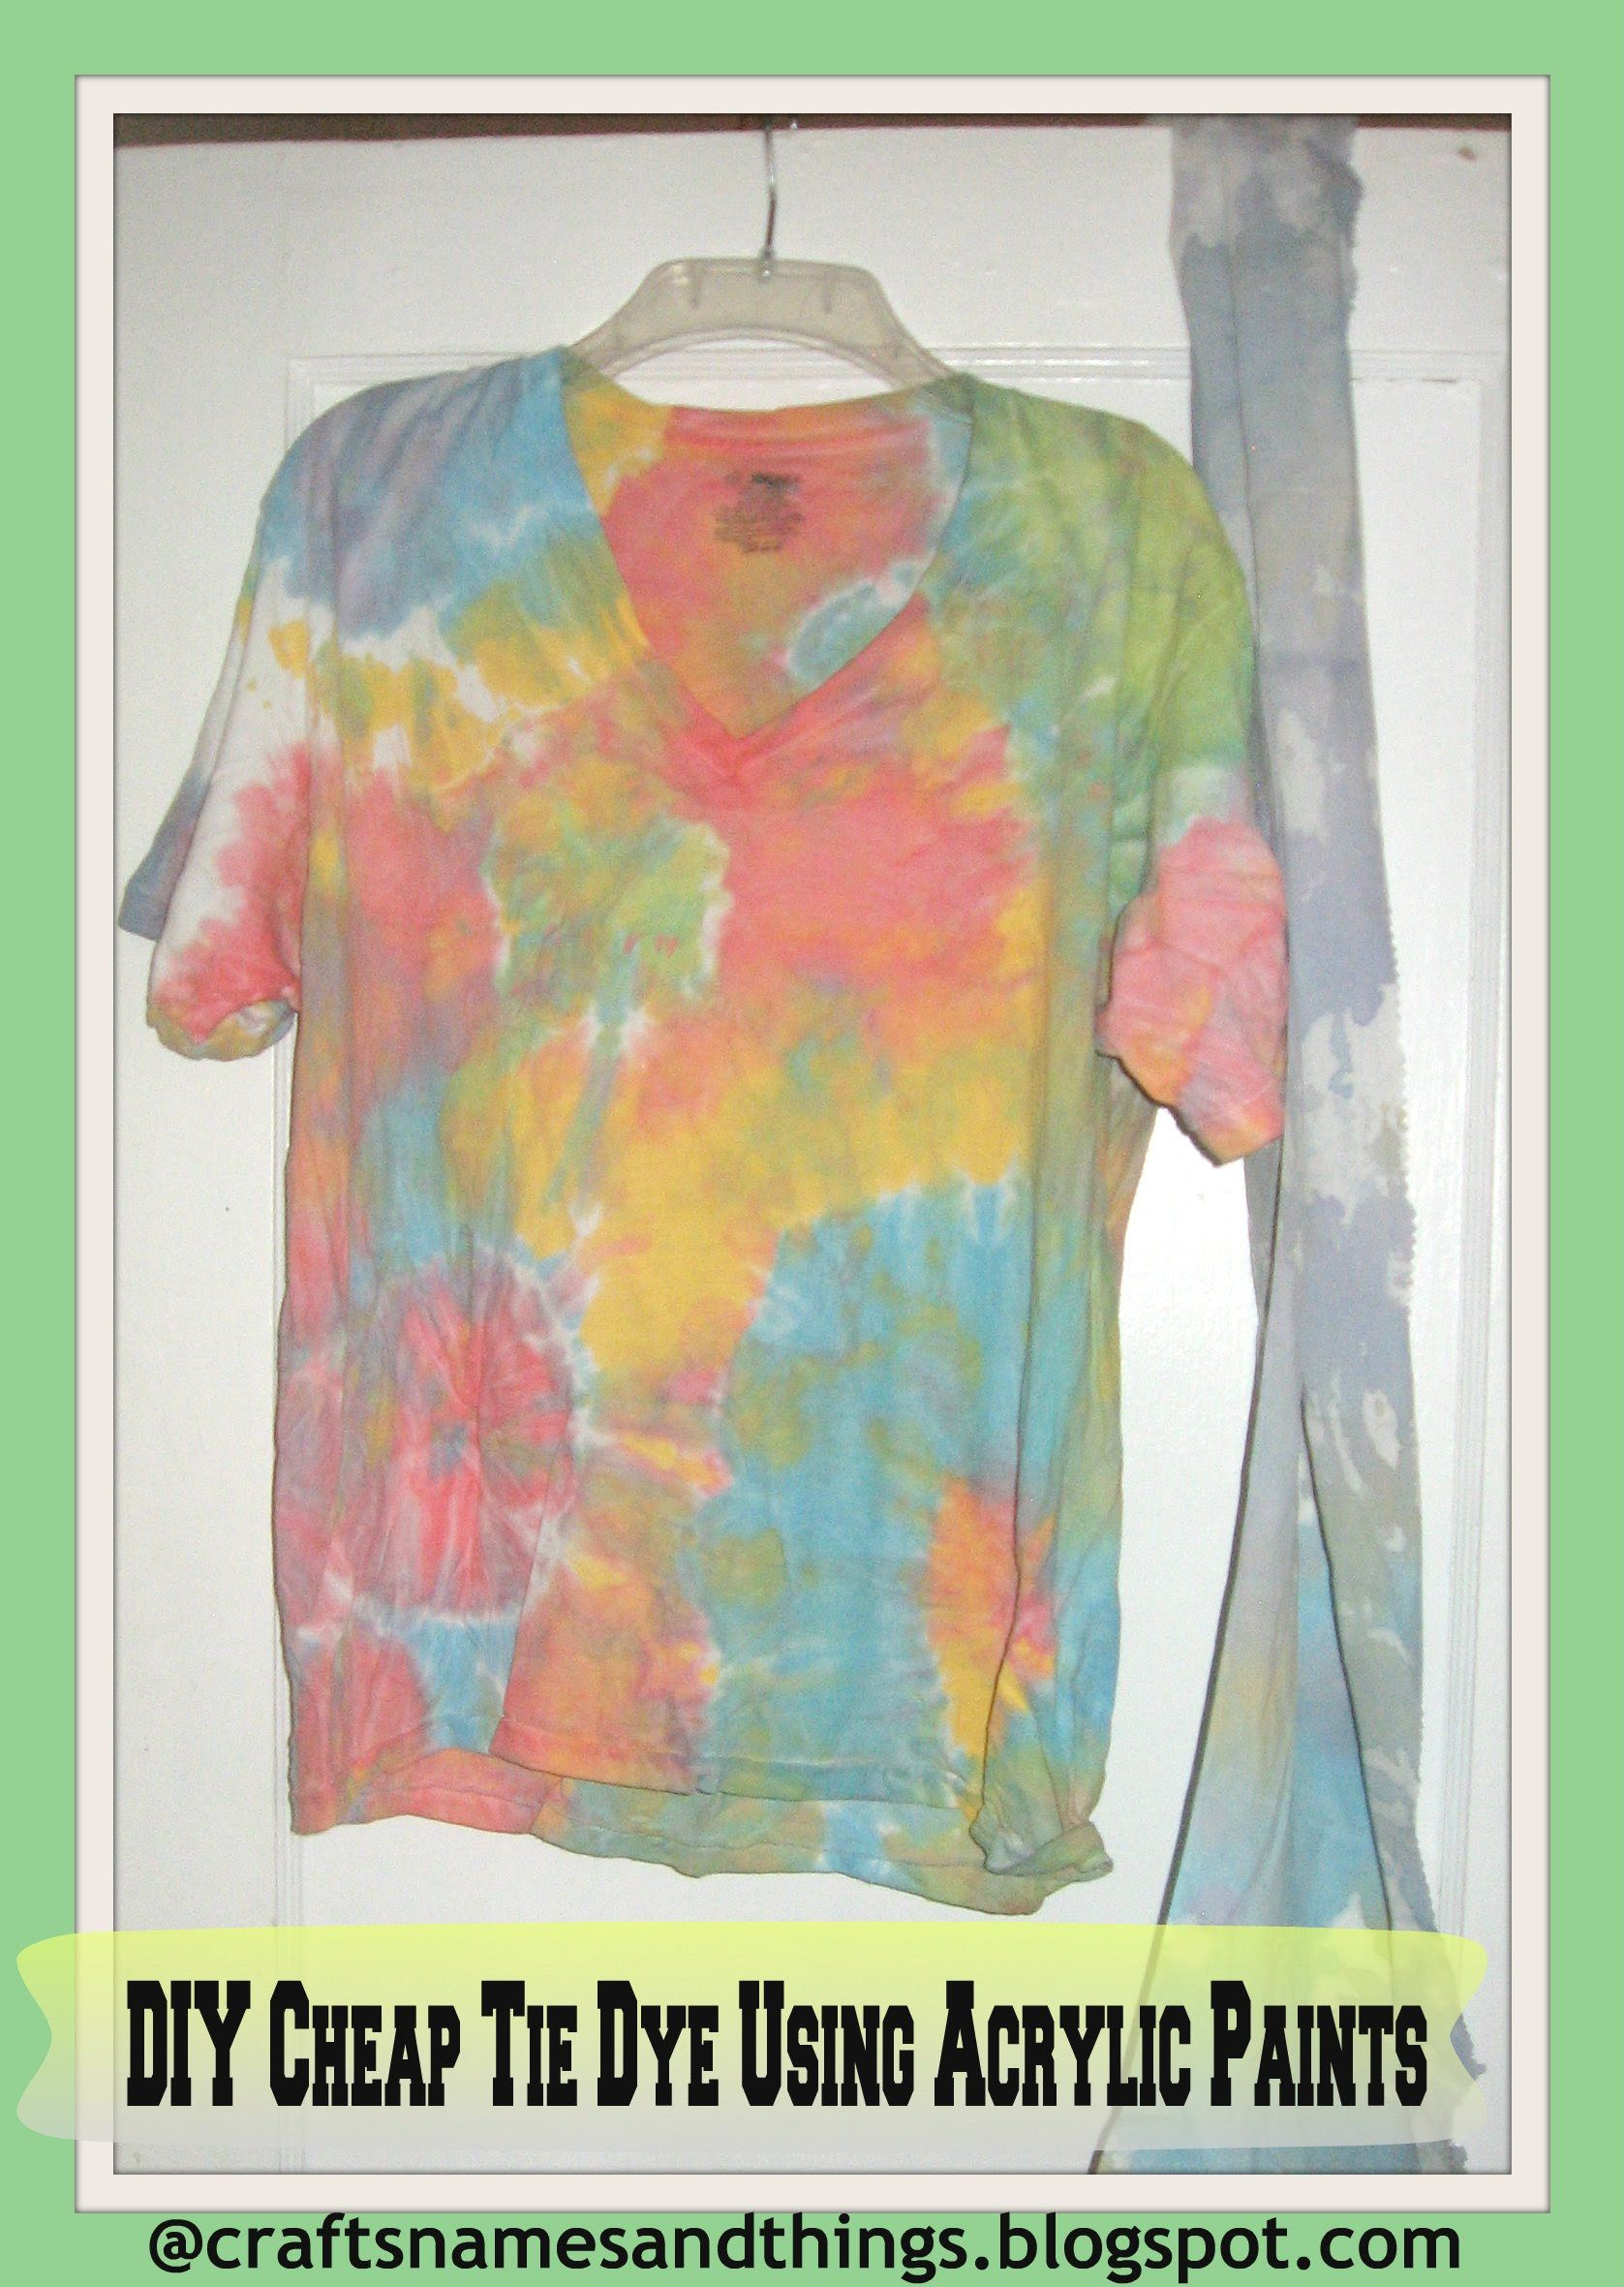 Diy tie dye t shirts how to tutorial how to tie dye using diy tie dye t shirts how to tutorial how to tie baditri Gallery